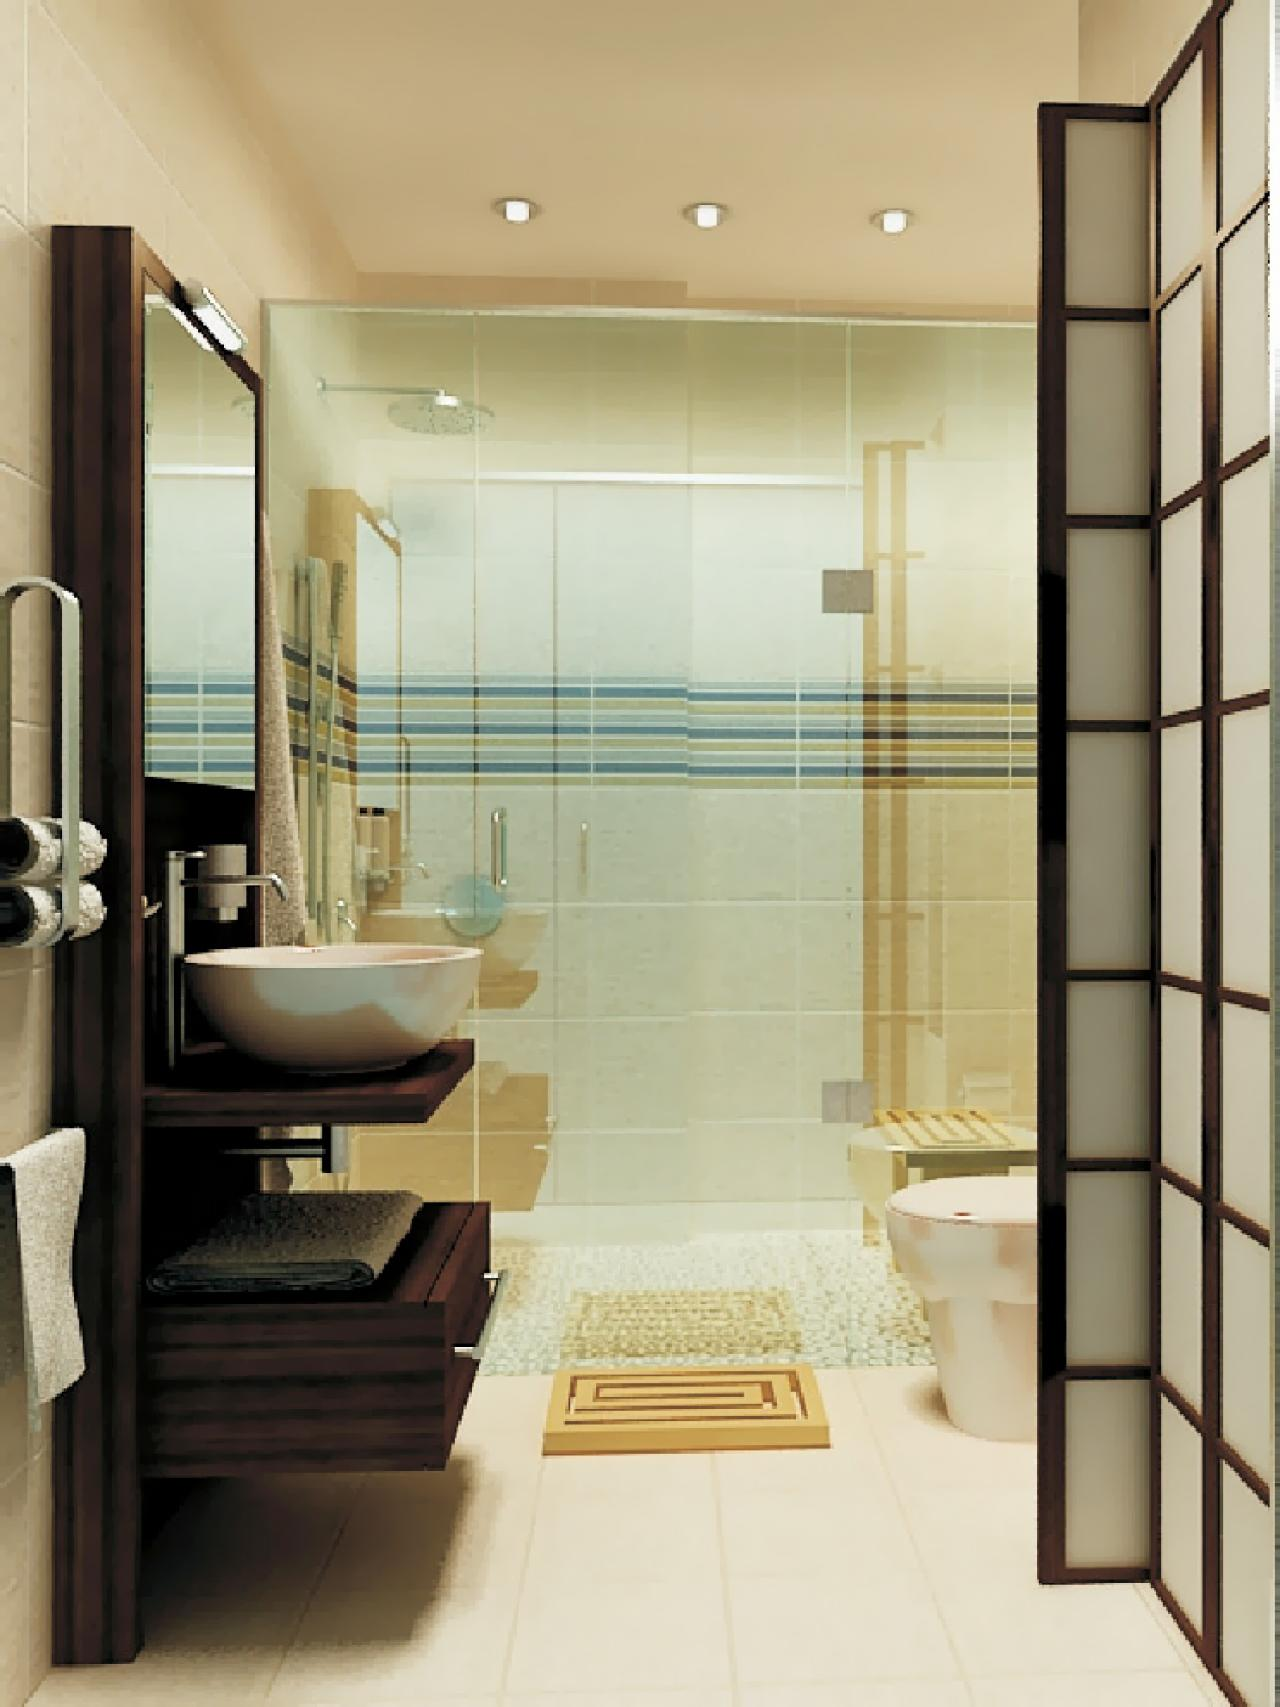 Small Luxury Bathrooms on Small Space Small Bathroom Tiles Design  id=47979